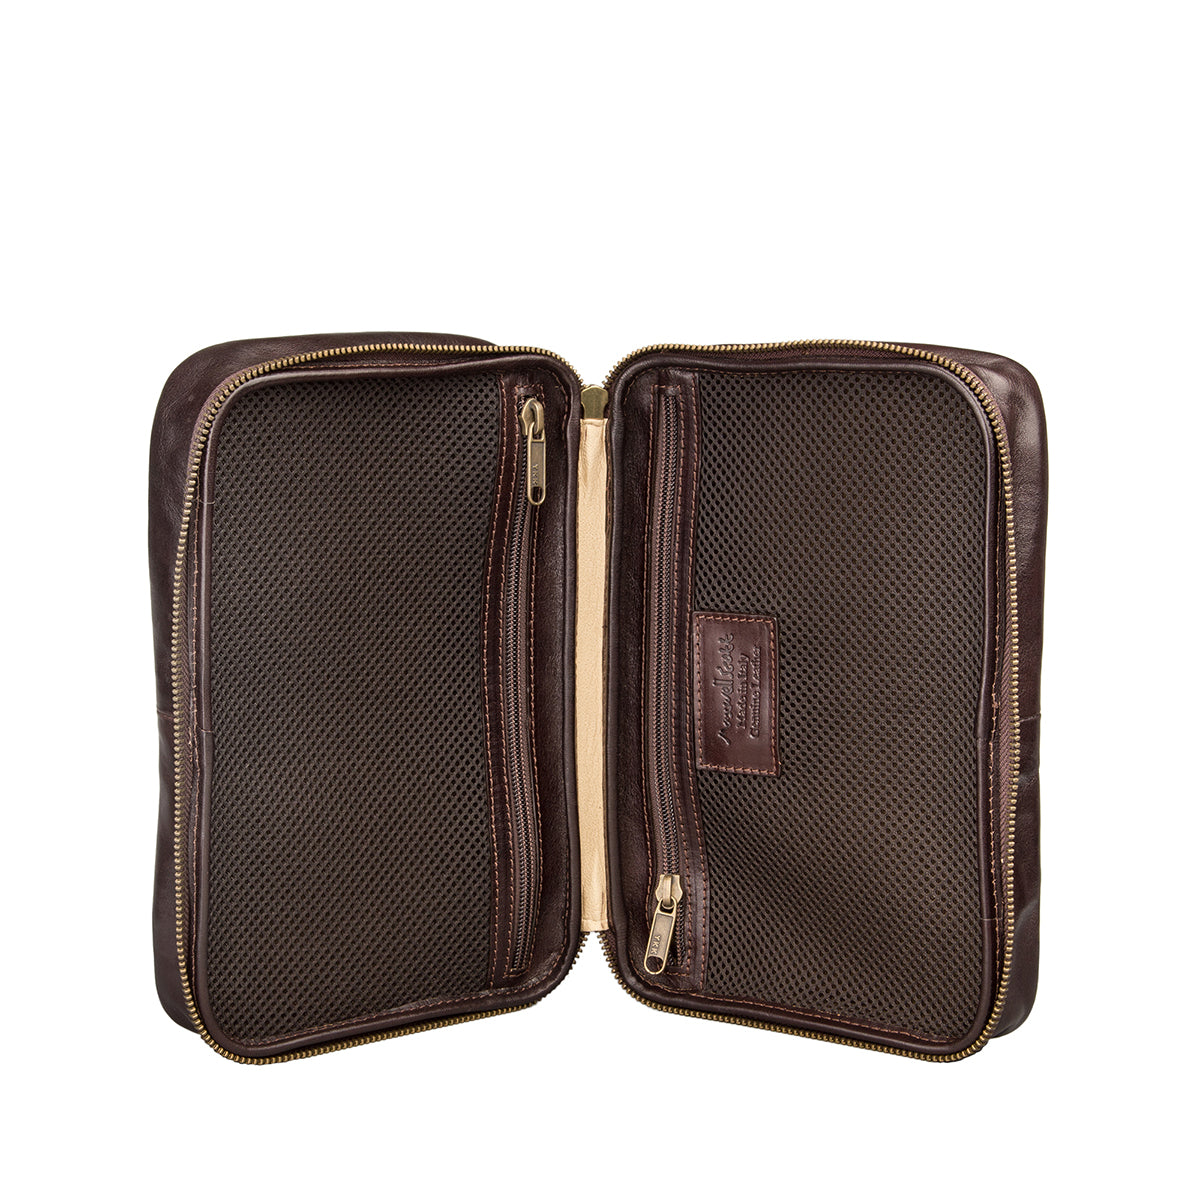 Image 6 of the 'Cascina' Chocolate Veg-Tanned Leather Makeup Case